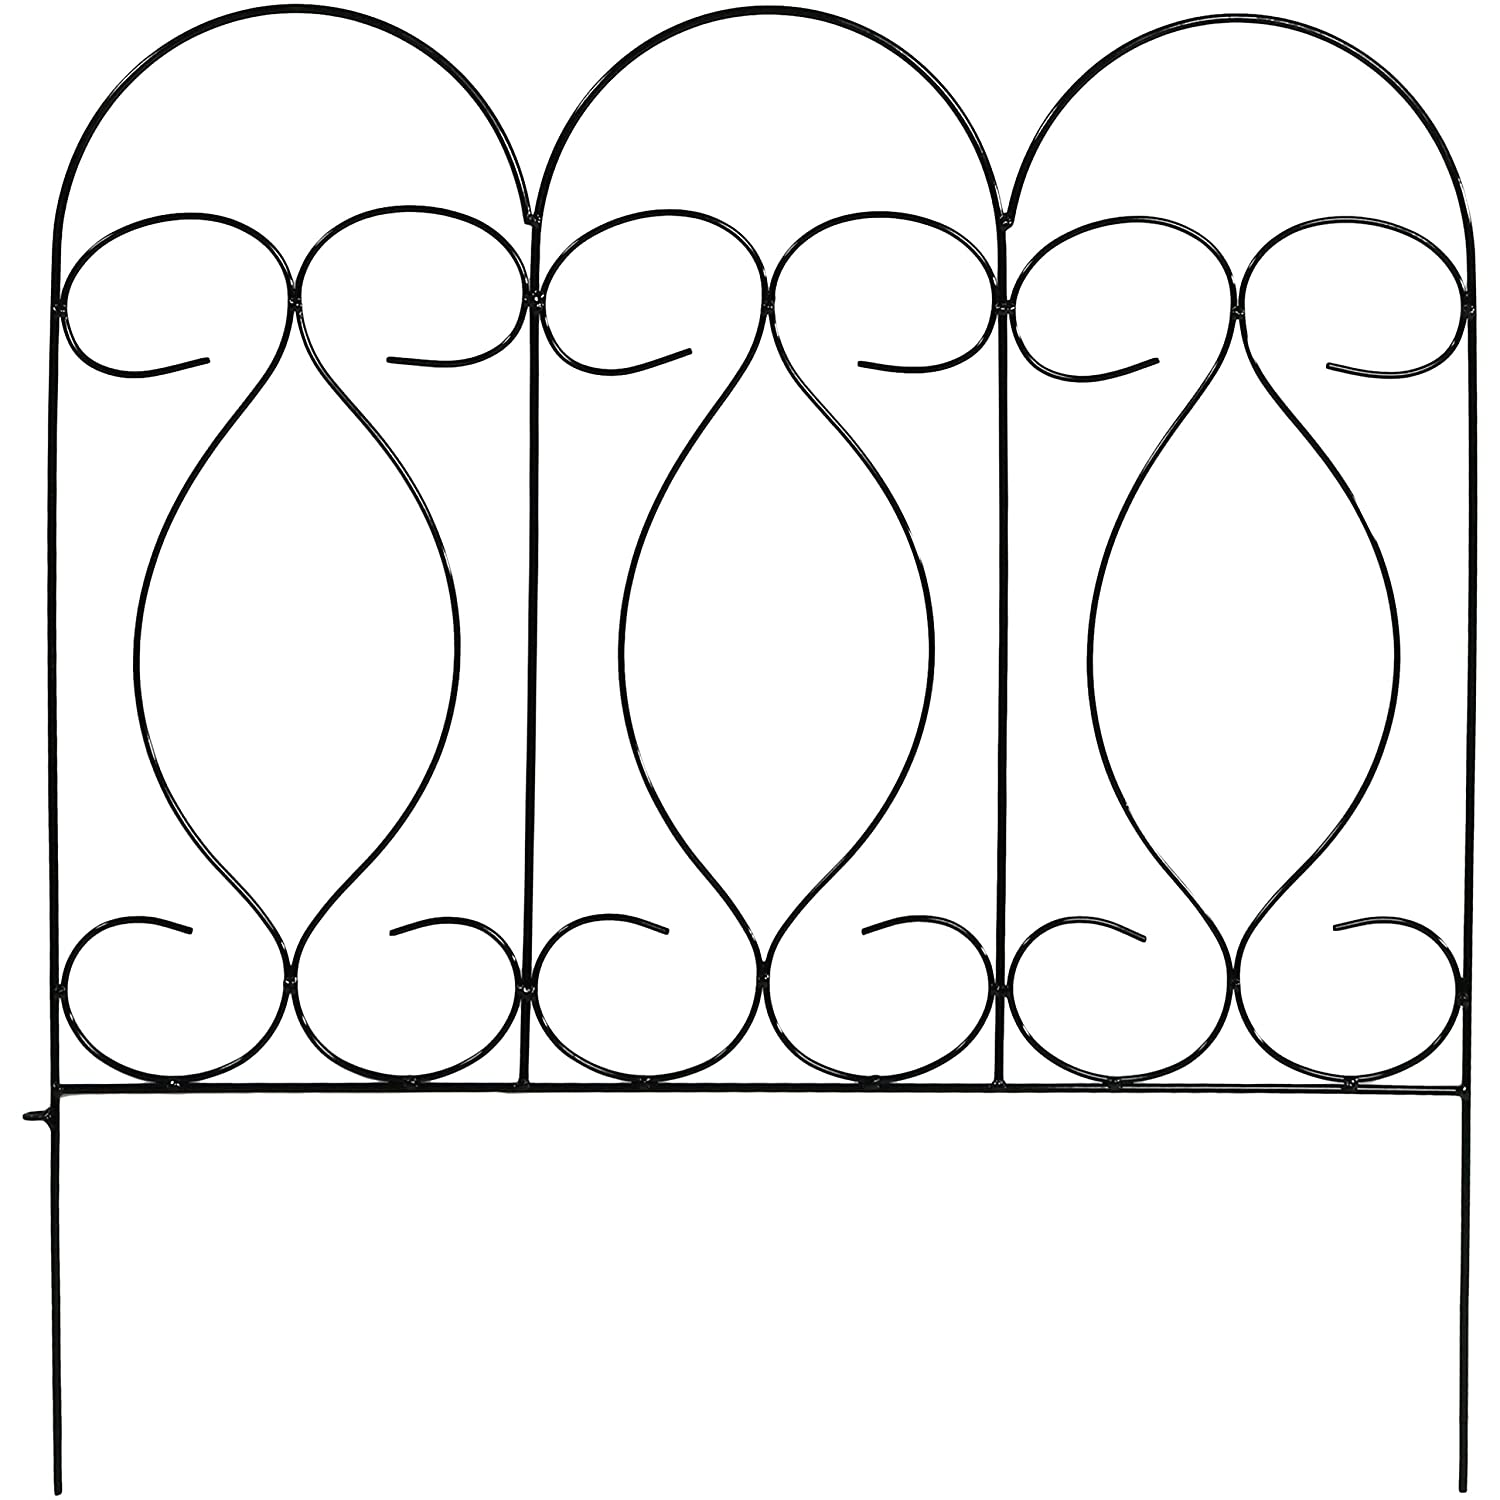 Sunnydaze 5 Piece Traditional Border Fence Set, Decorative Metal Garden Fencing, 24 Inches x 24 Inches Wide Each Piece, 10 Feet Overall